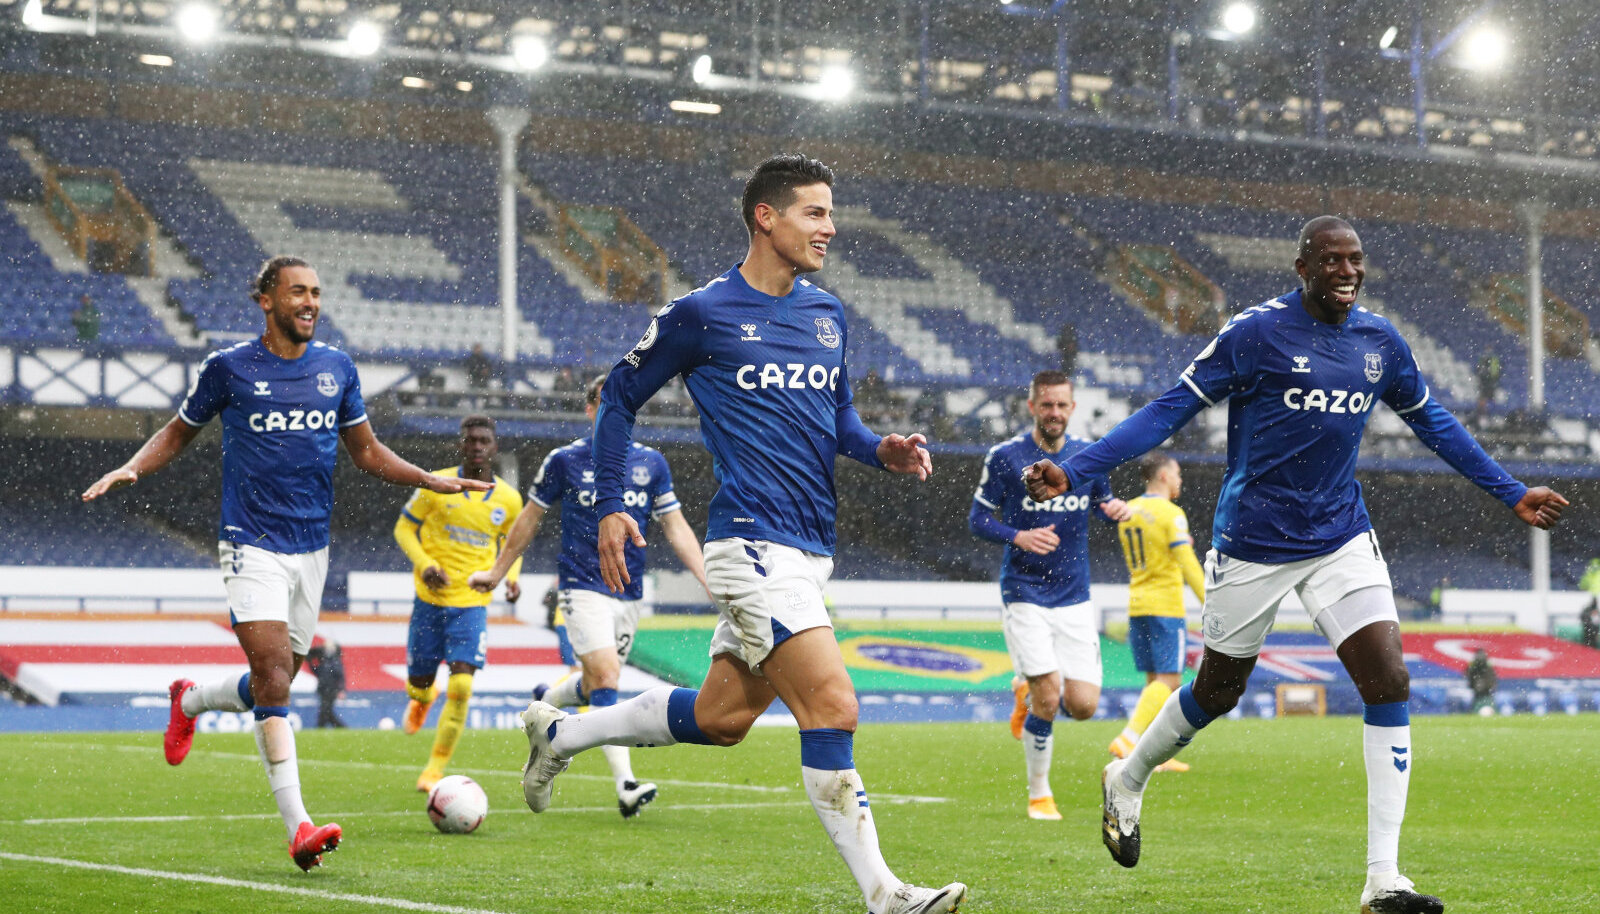 Everton hoiab Premier League'is liidrikohta. Pildil Dominic Calvert-Lewin, James Rodriguez ja Abdoulaye Doucoure.